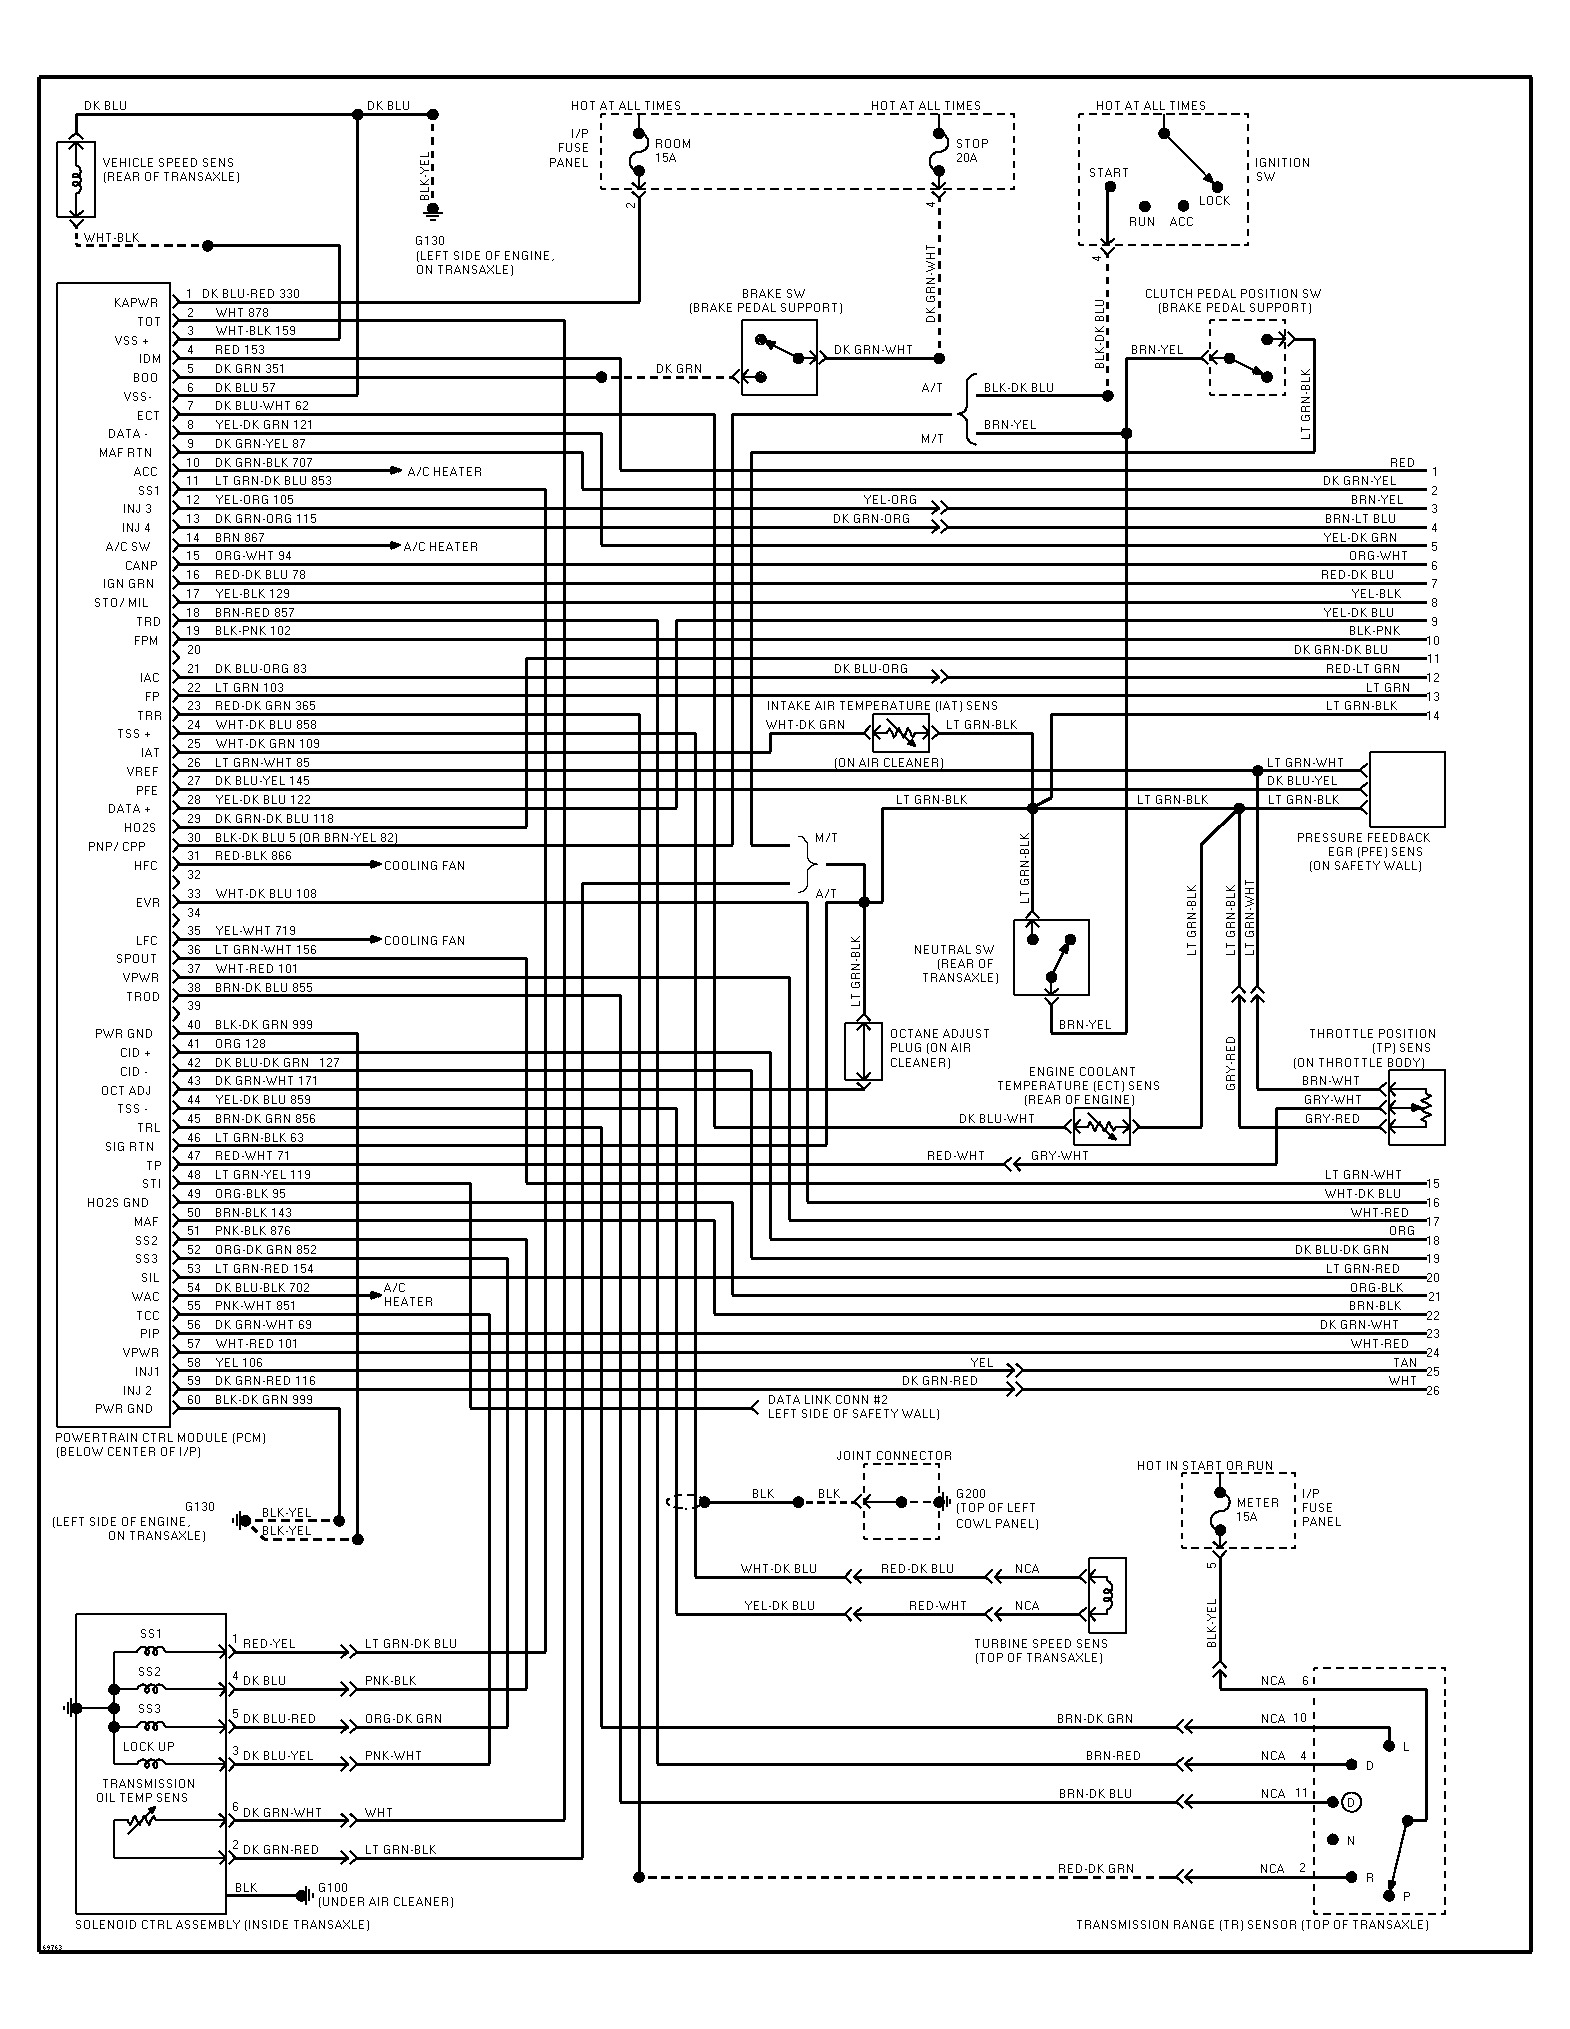 original 1995 ford escort wiring diagram i need to find a color coded ford escort wiring diagram at n-0.co